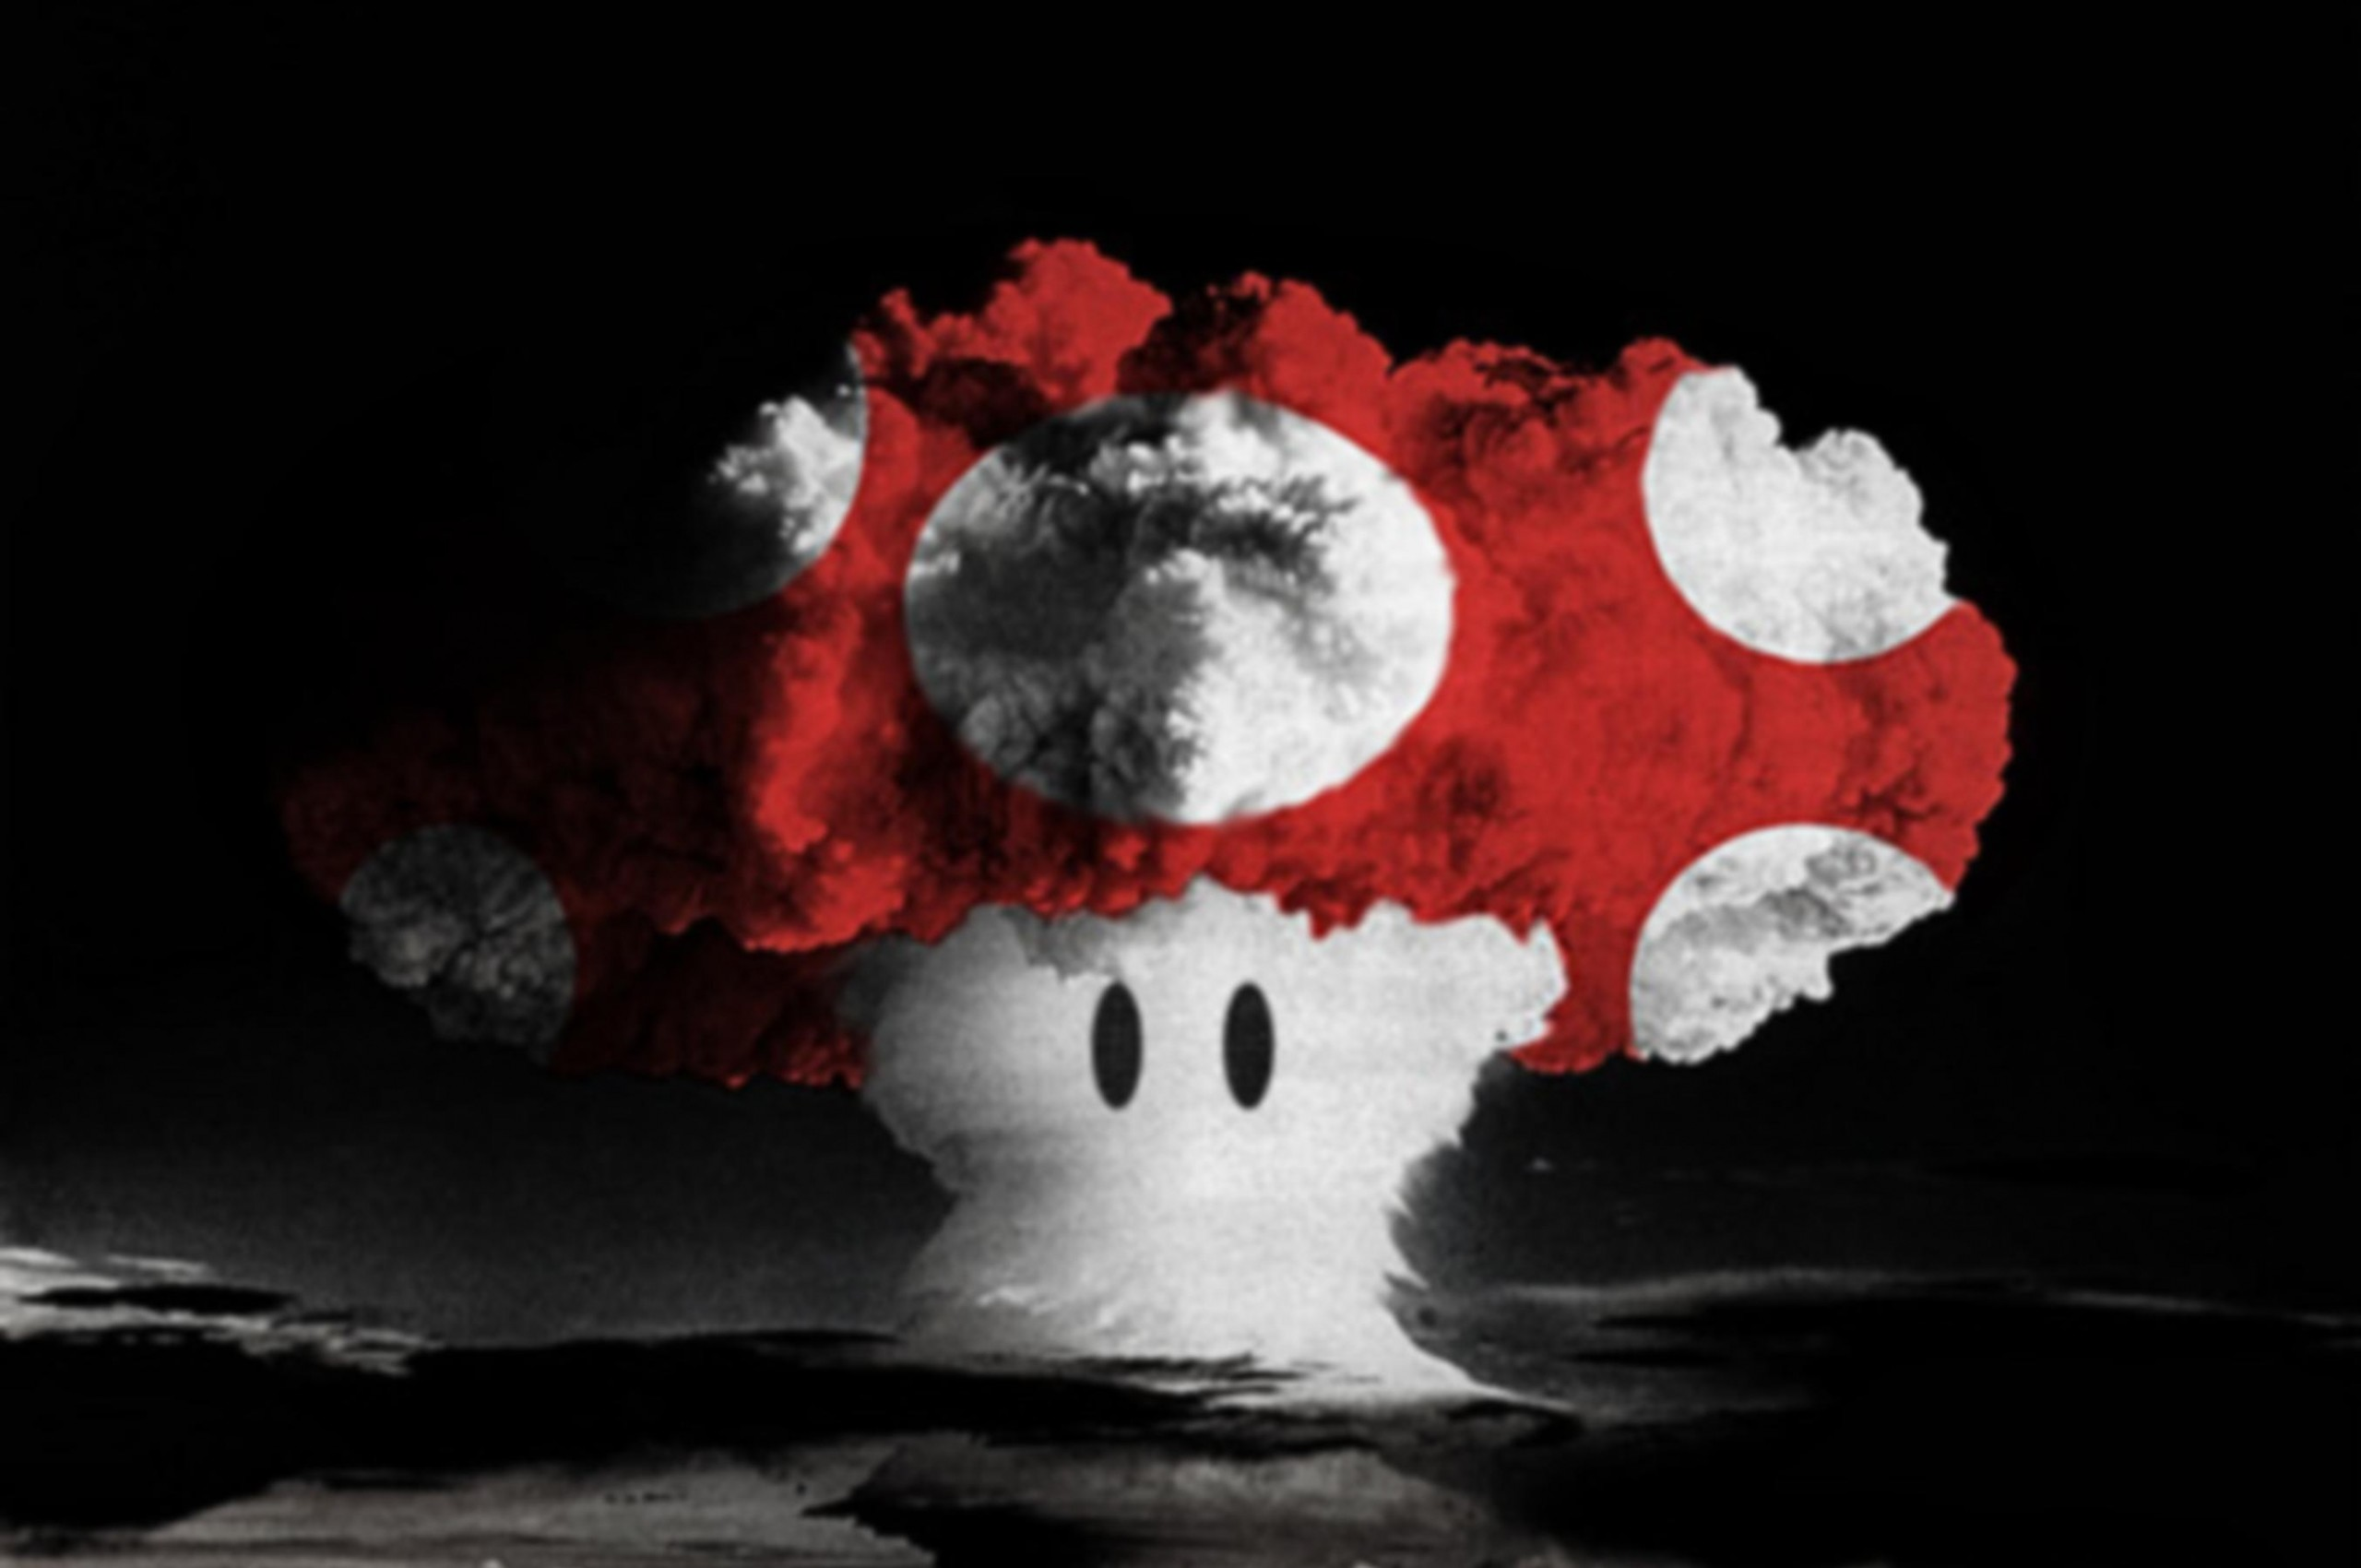 2560x1700 Mushroom Cloud Wallpaper